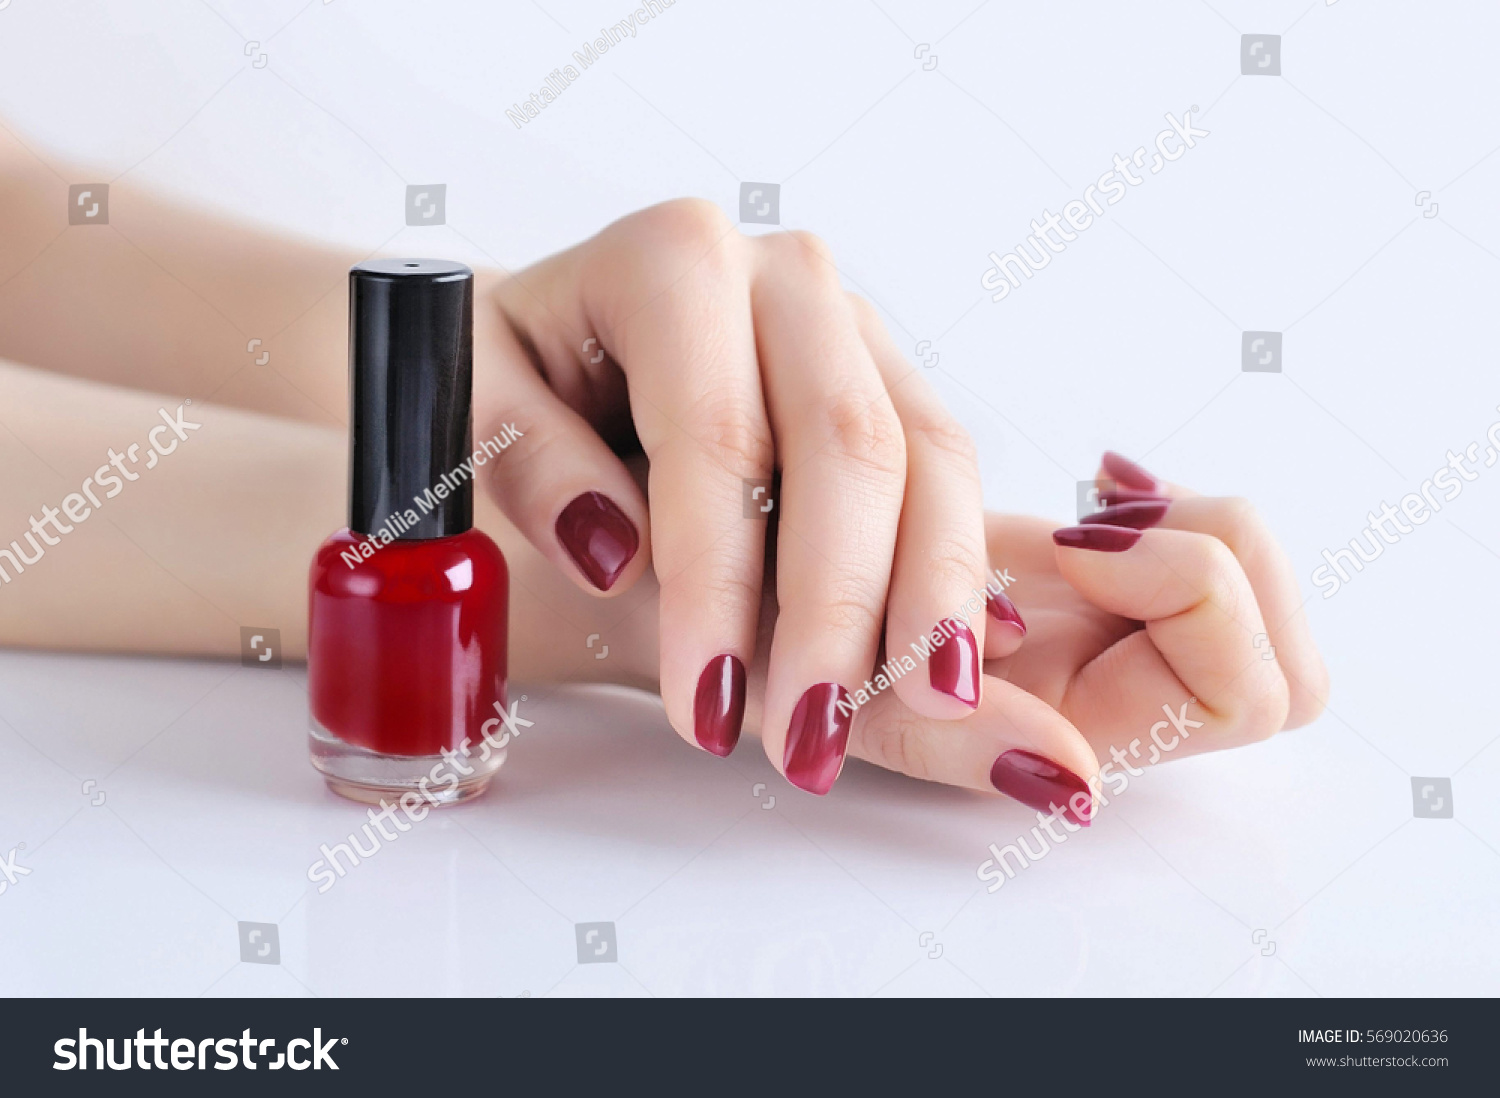 Hands Woman Dark Red Manicure Nail Stock Photo (Royalty Free ...